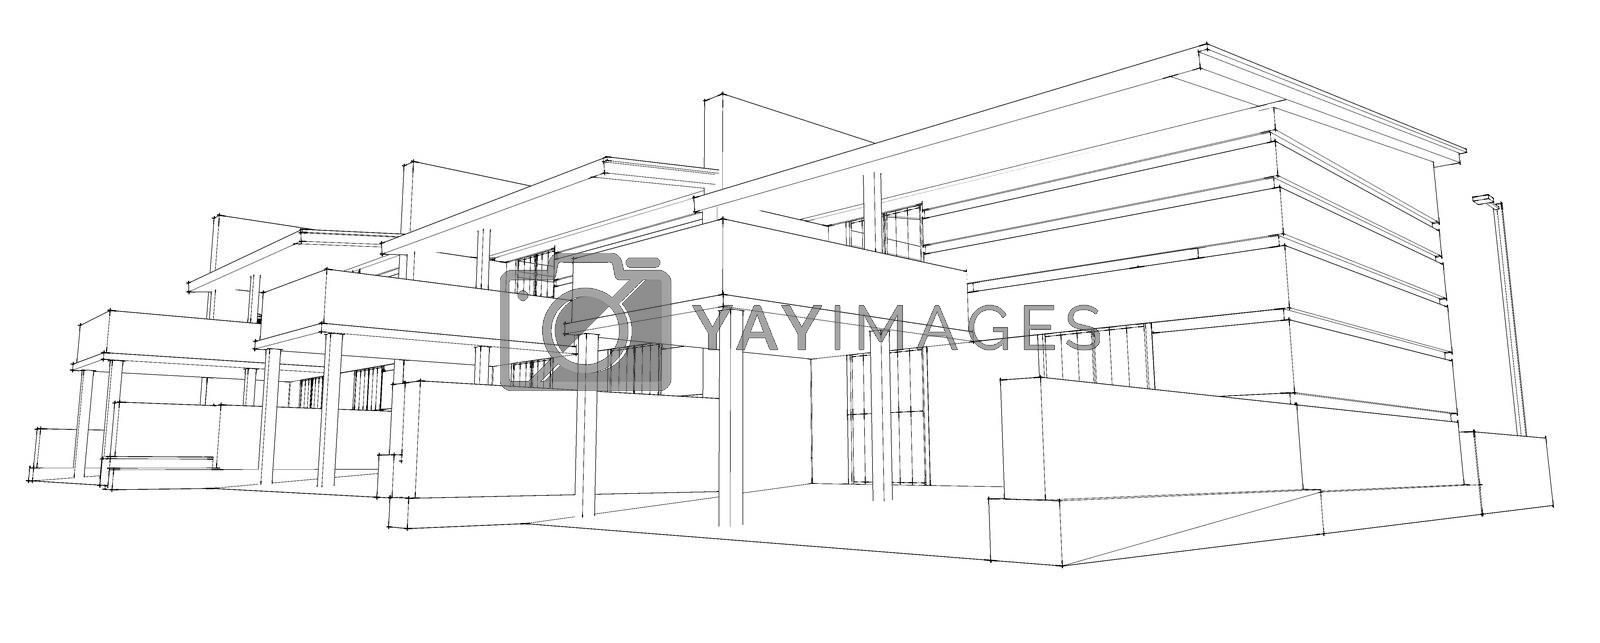 pencil sketch of residential development